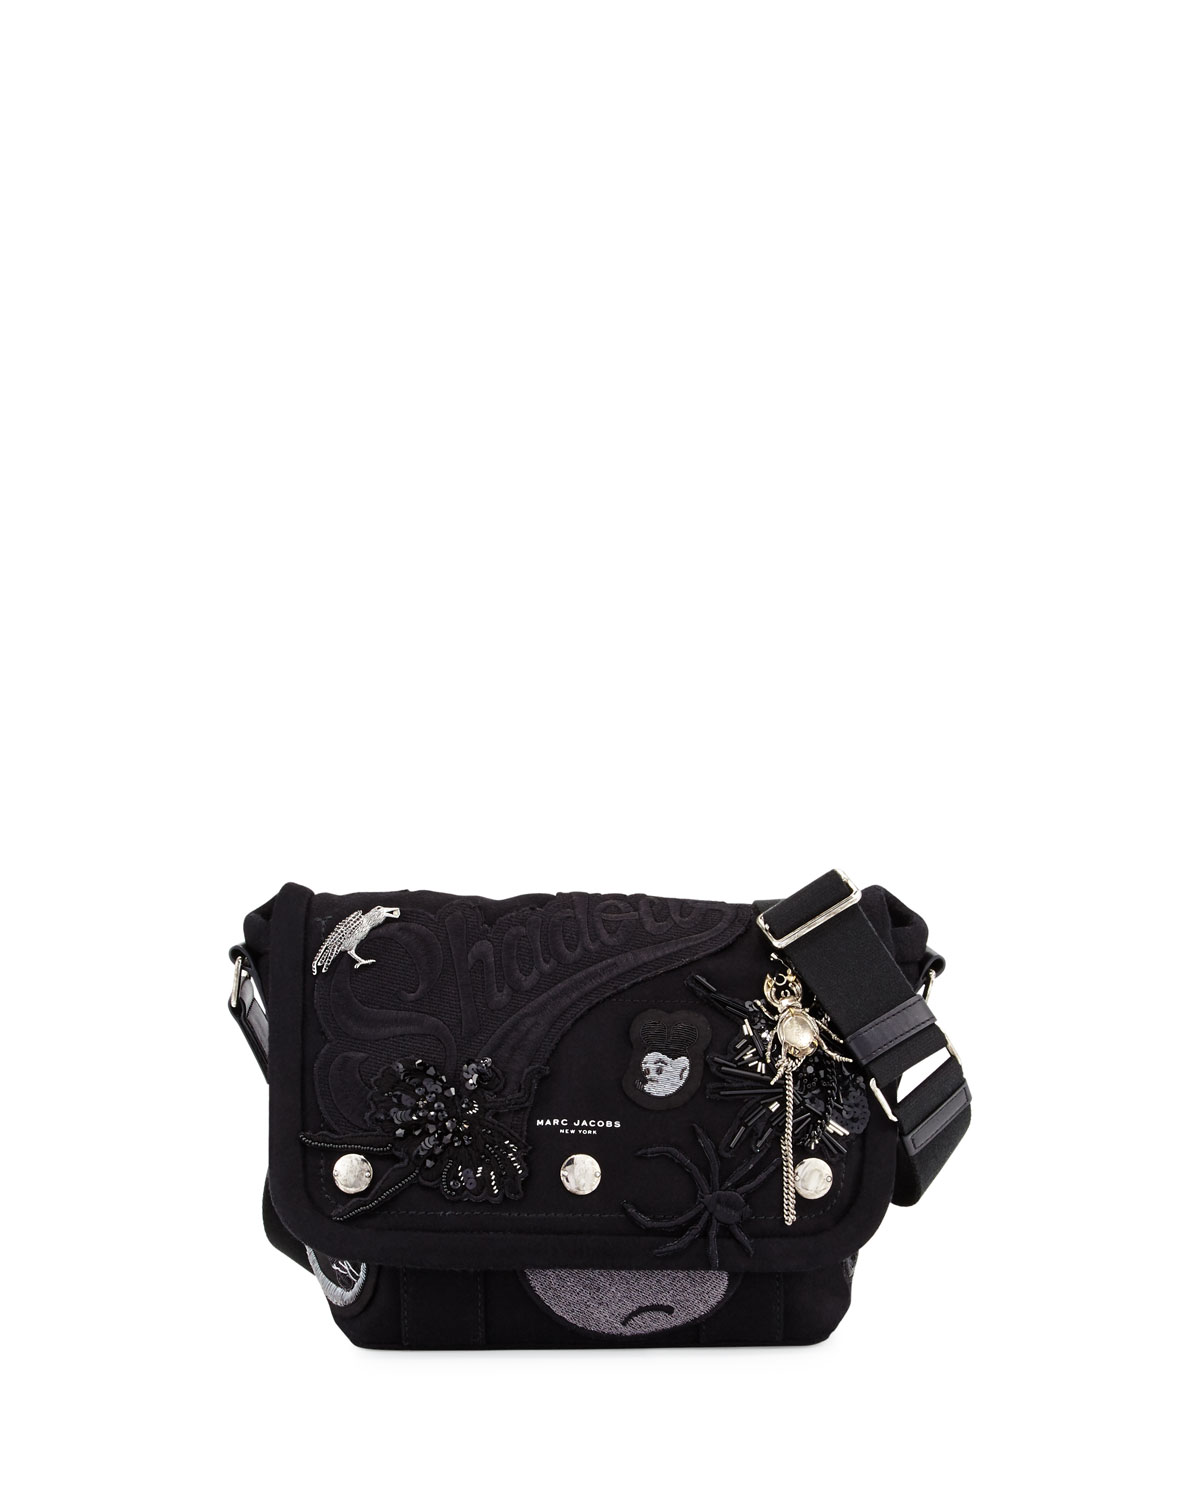 b2c6ff1aaa Marc Jacobs Rummage Small Embellished Messenger Bag